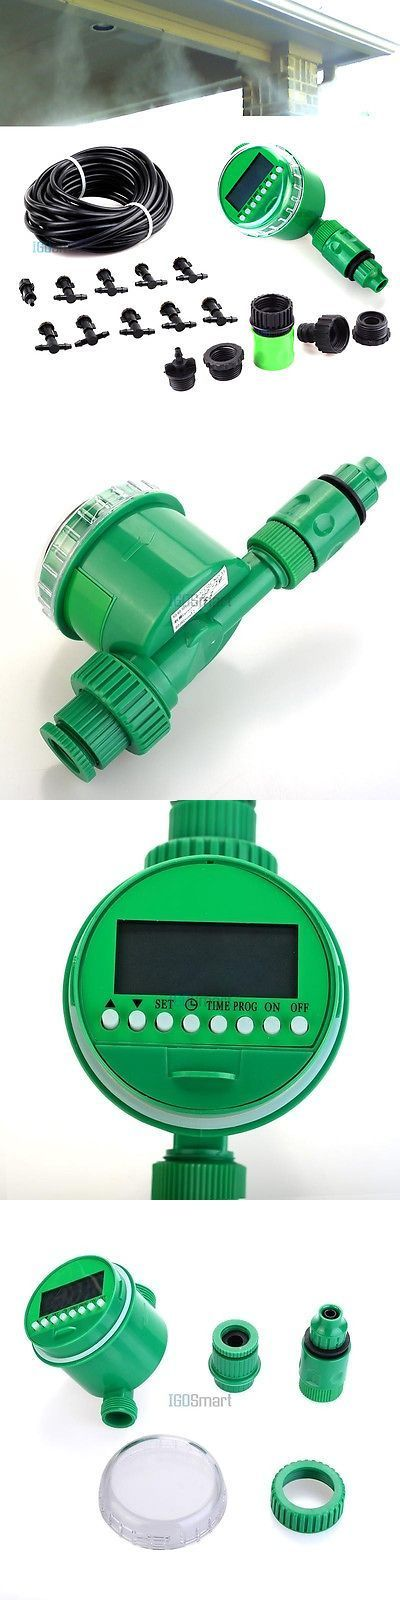 Hose Nozzles and Wands 181015: Automatic Misting Cooling System Watering Irrigation Lcd Timer Kit Nozzles Spray -> BUY IT NOW ONLY: $35.99 on eBay! #wateringtimer